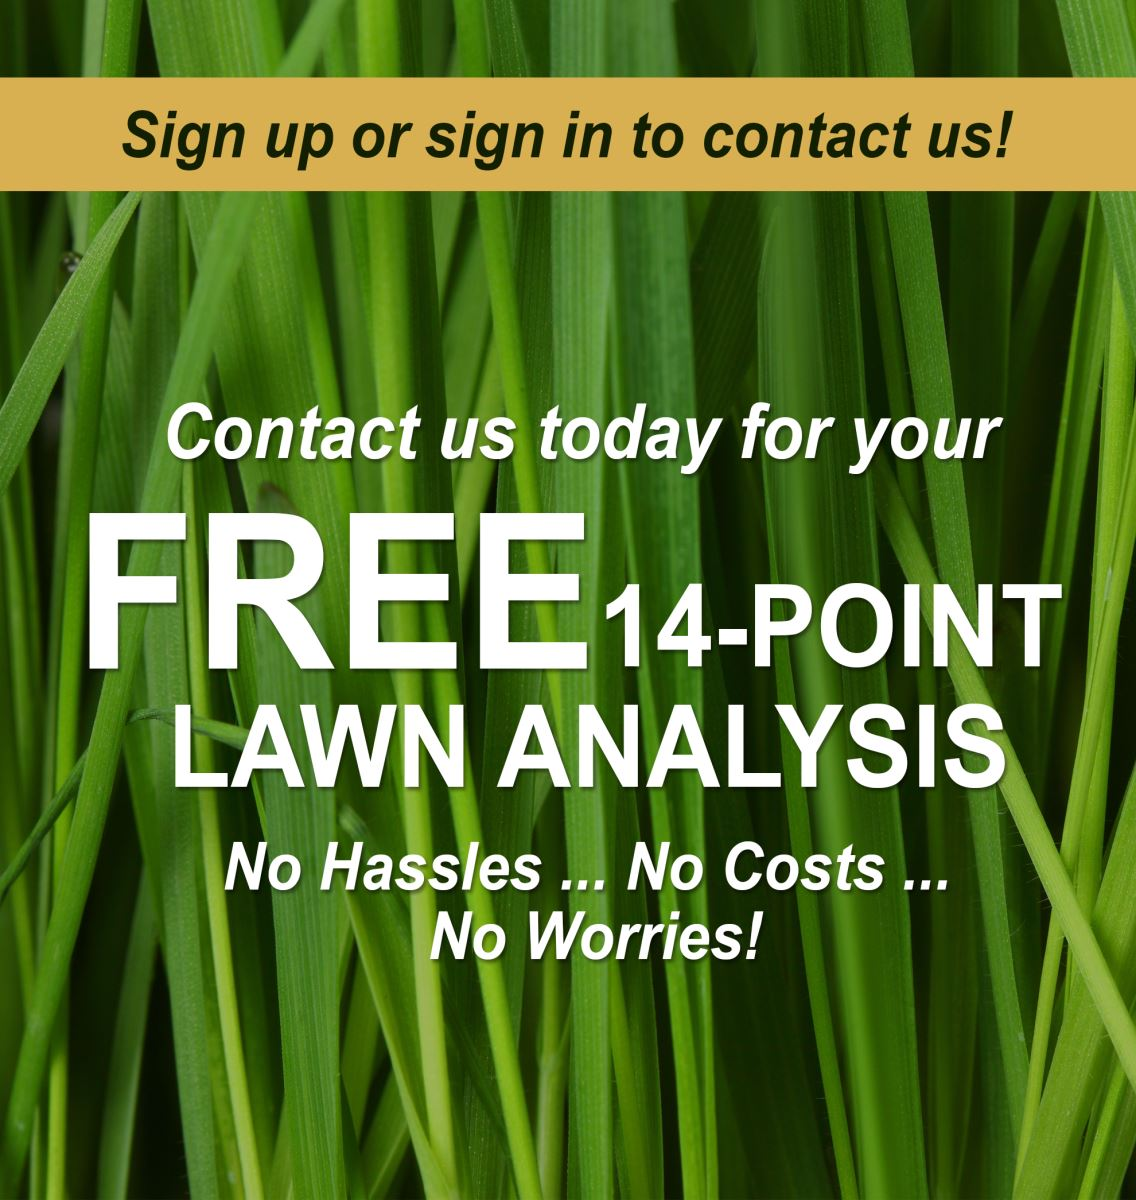 Free Lawn Analysis & We're Hiring